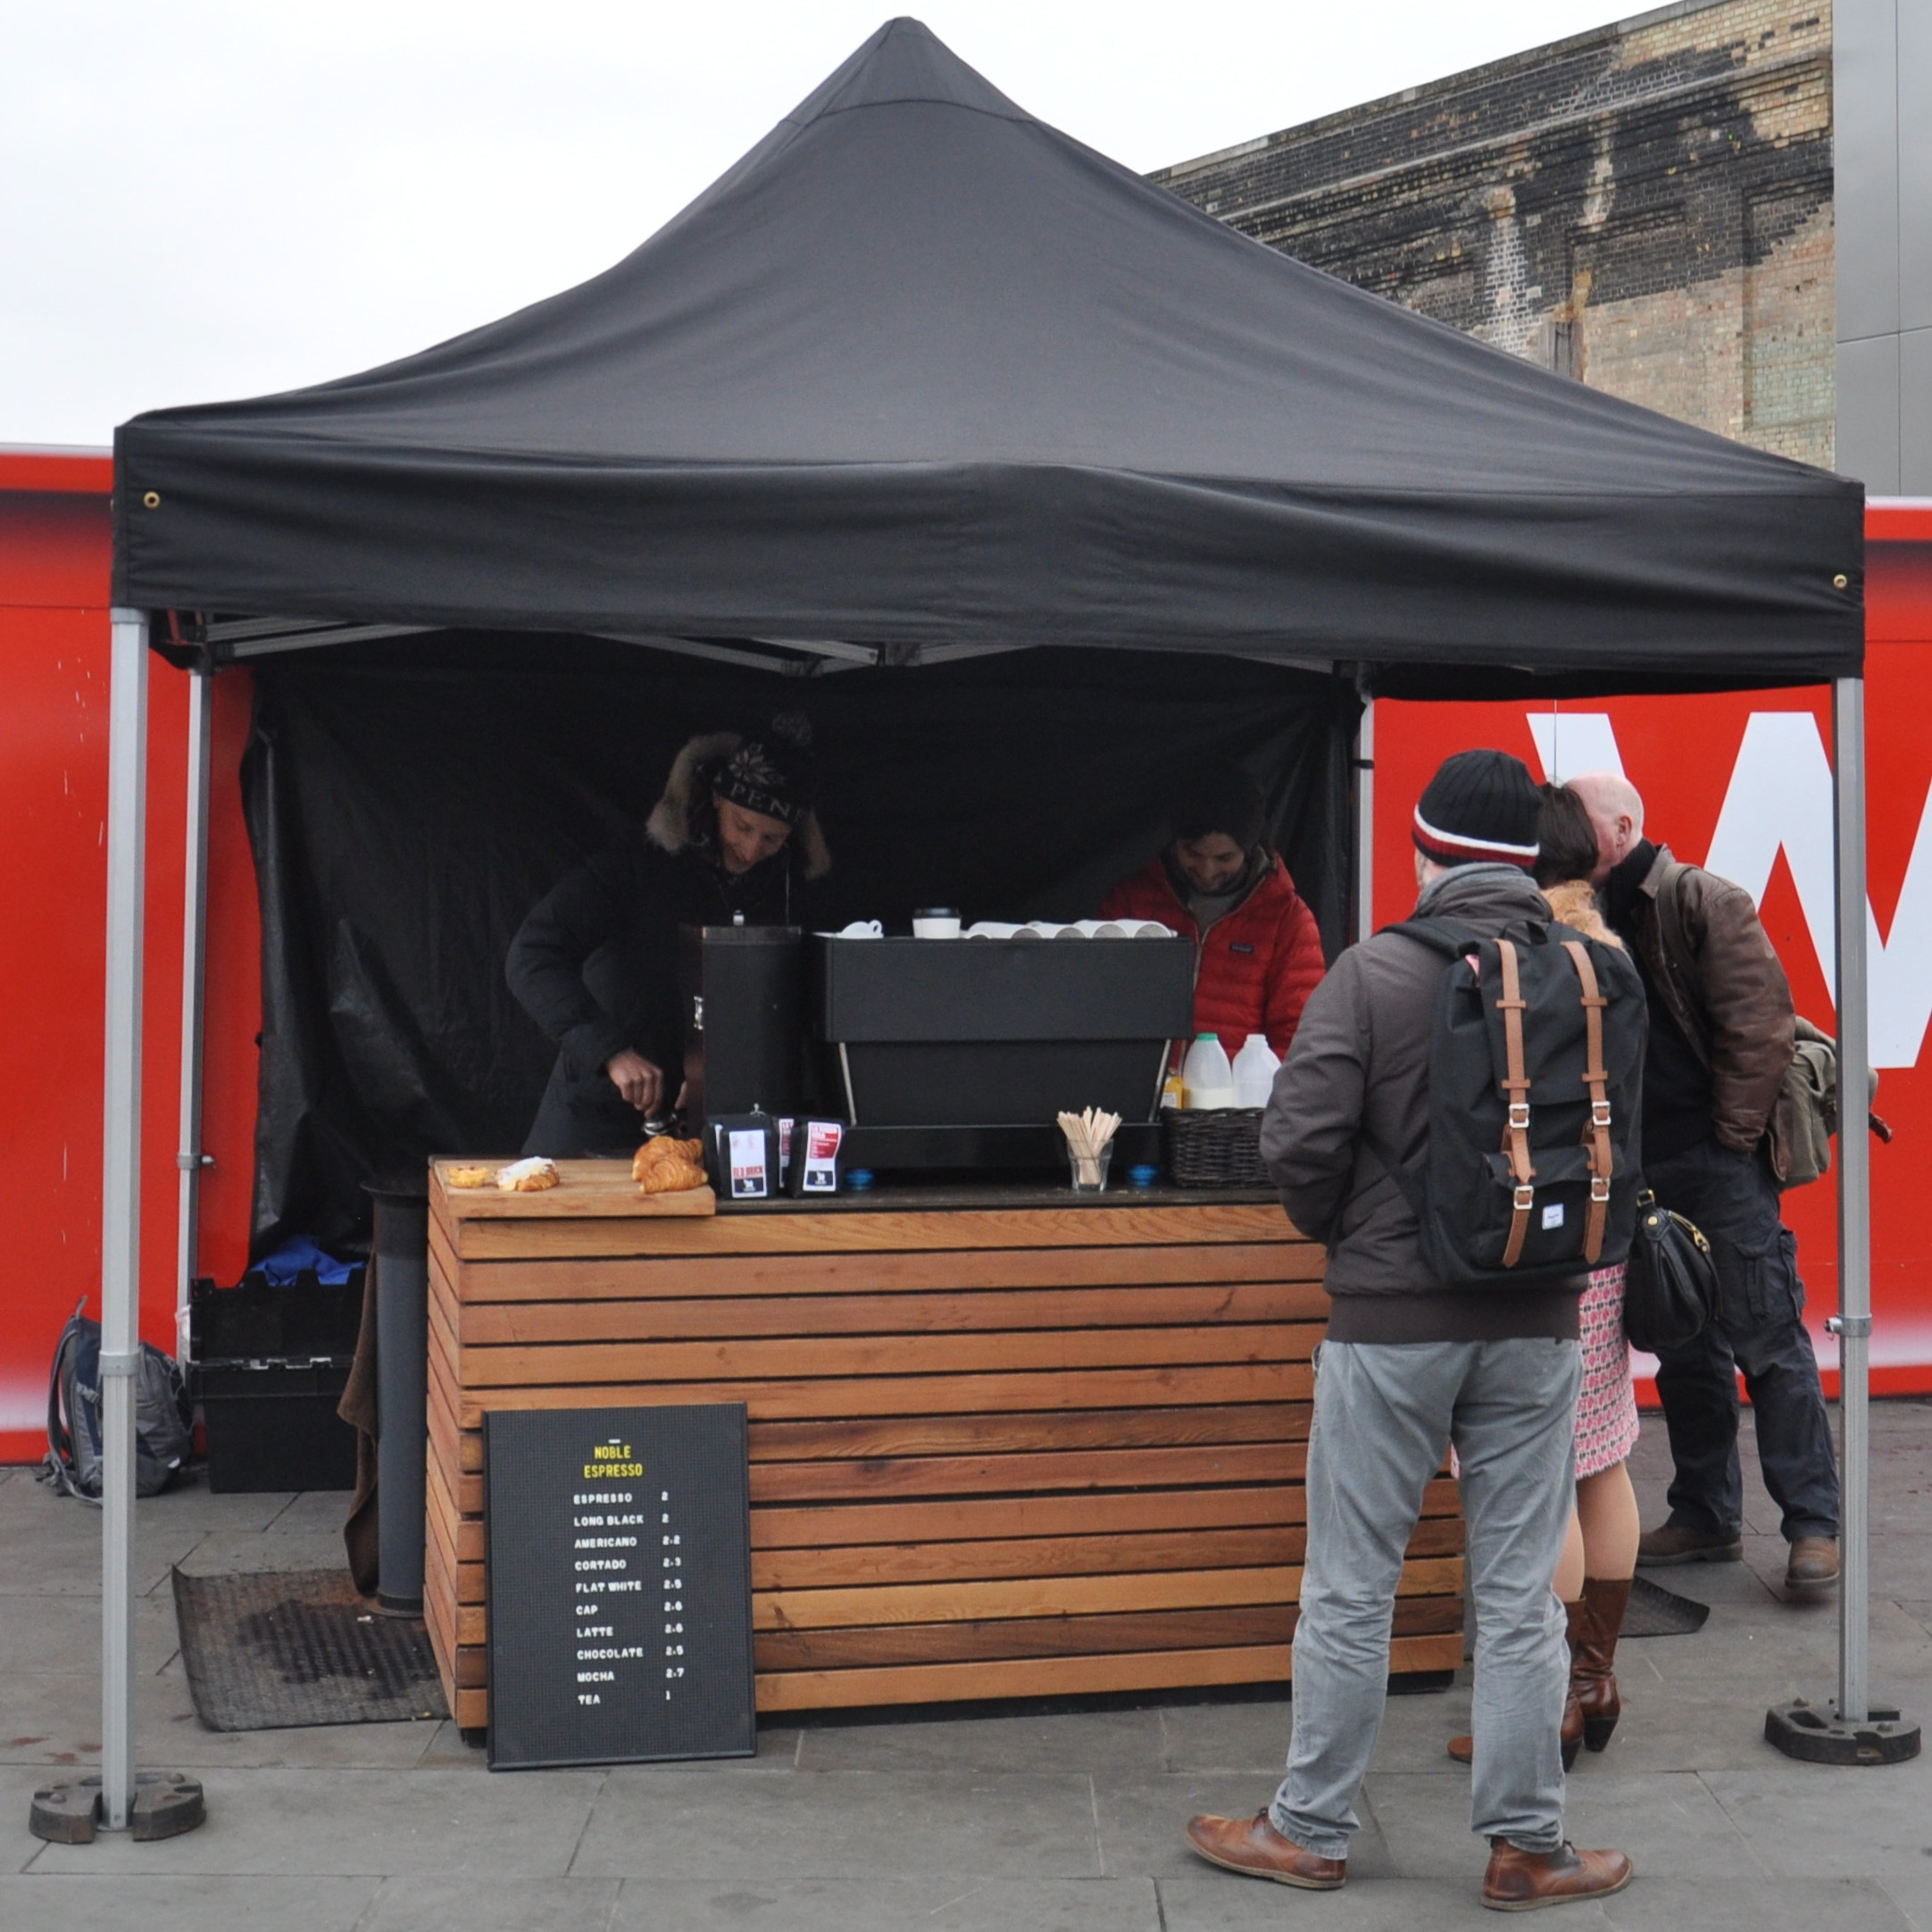 A black pop-up gazebo shelters a wooden counter holding a grinder and espresso machine